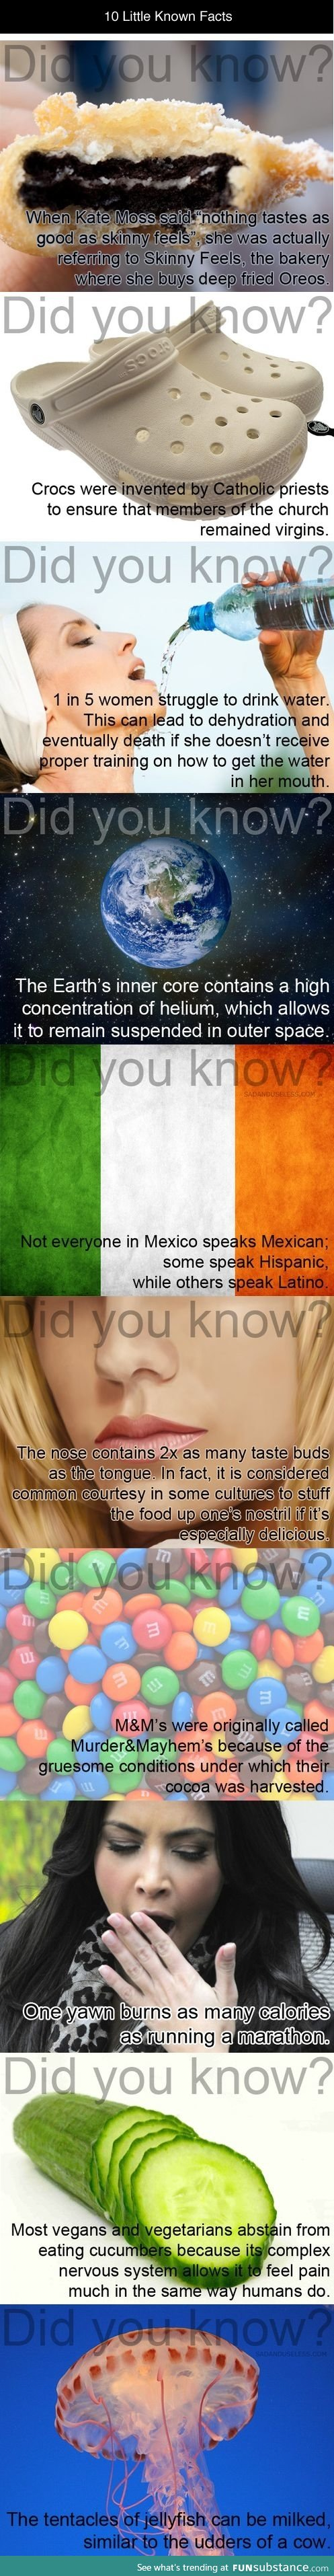 The more you know